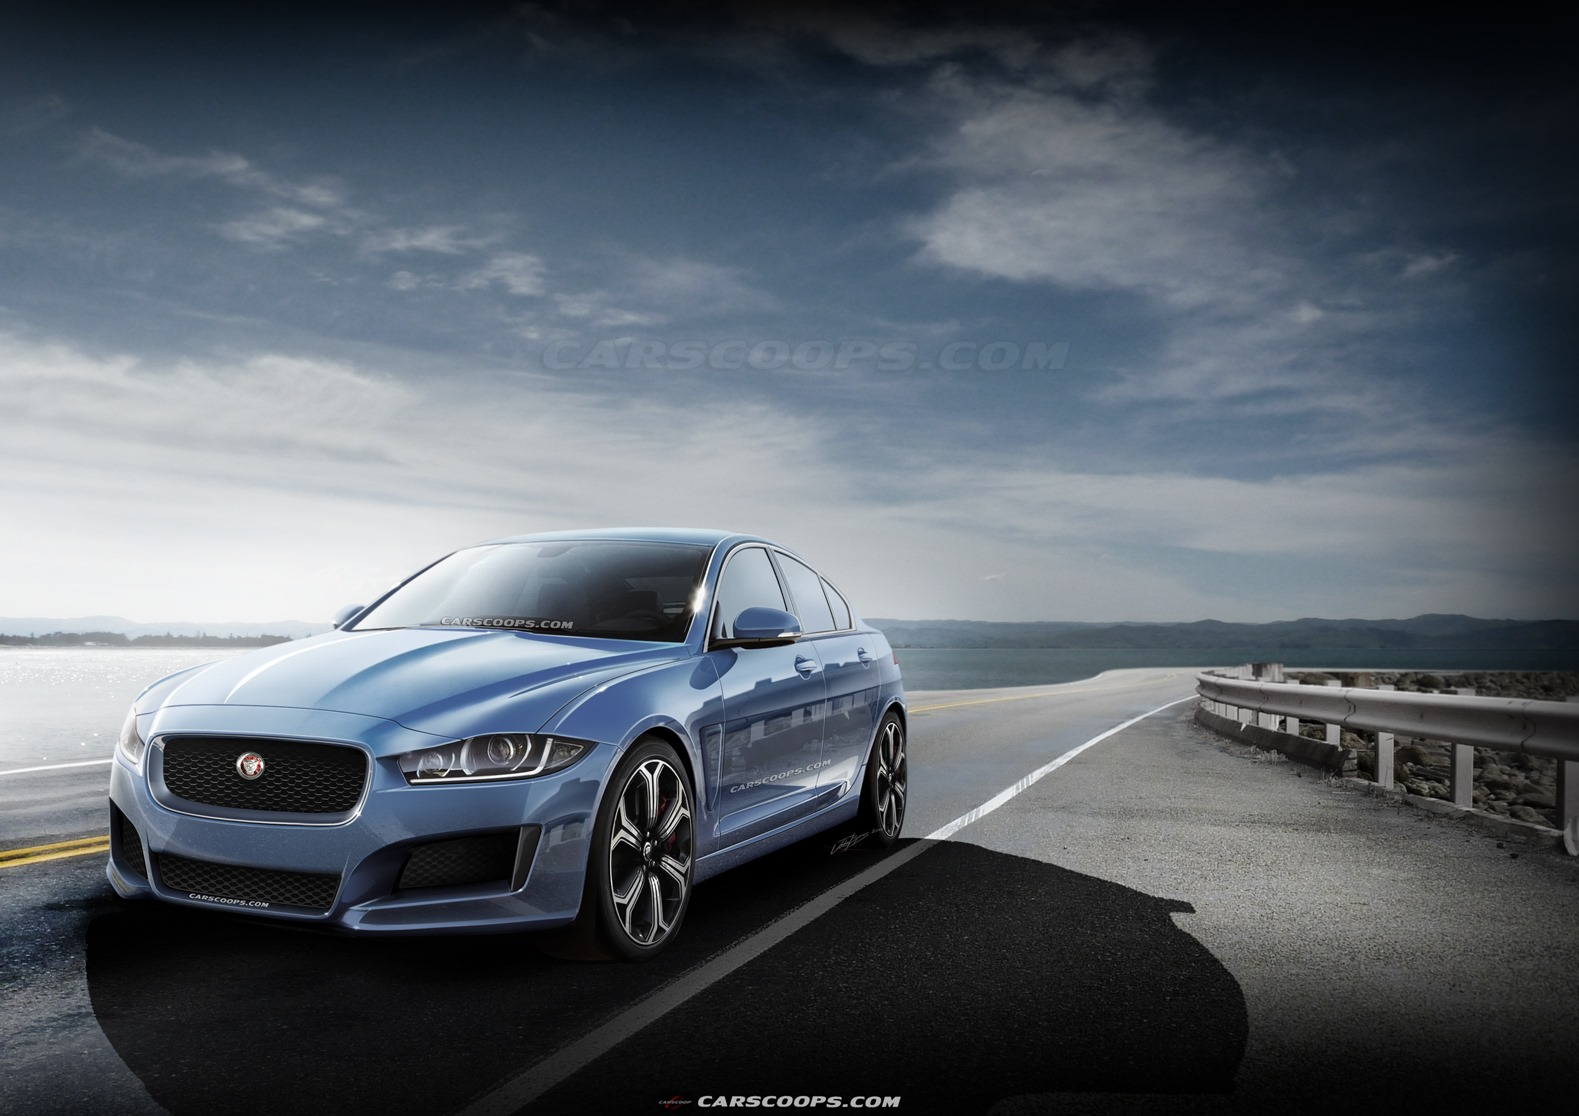 2014 jaguar xe x760 page 5. Black Bedroom Furniture Sets. Home Design Ideas